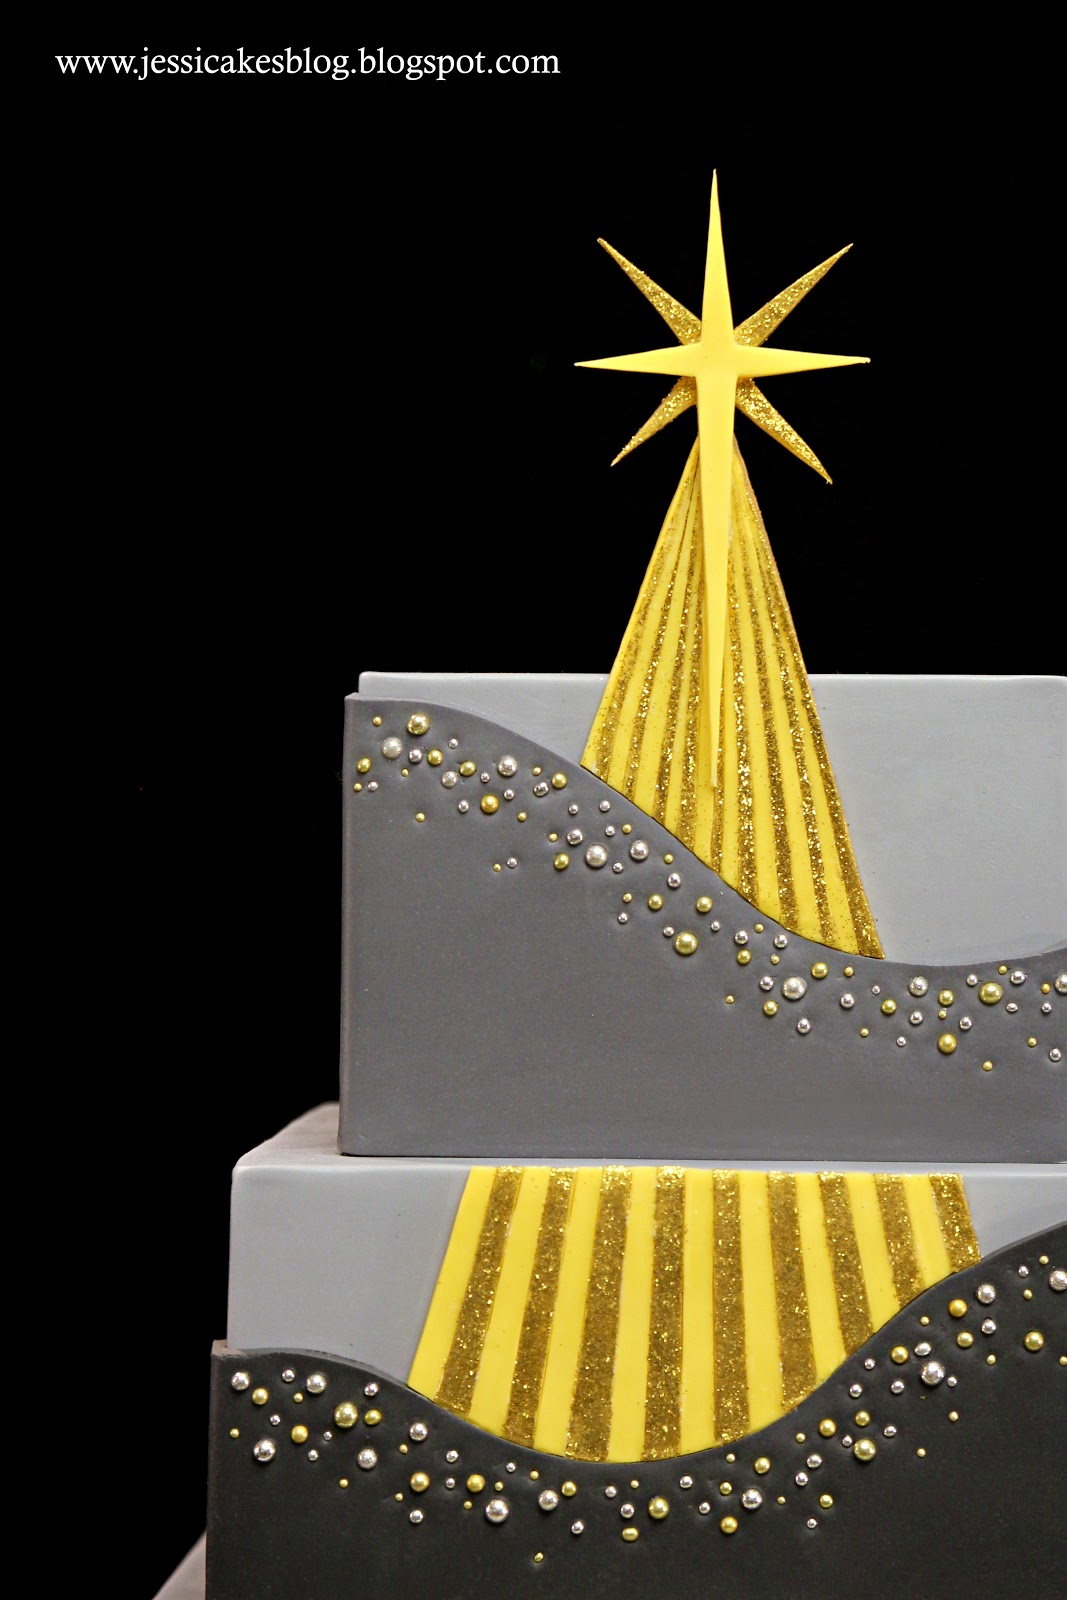 Christmas Cake Decoration With Stars : The Star Of Christmas Cake oursongfortoday